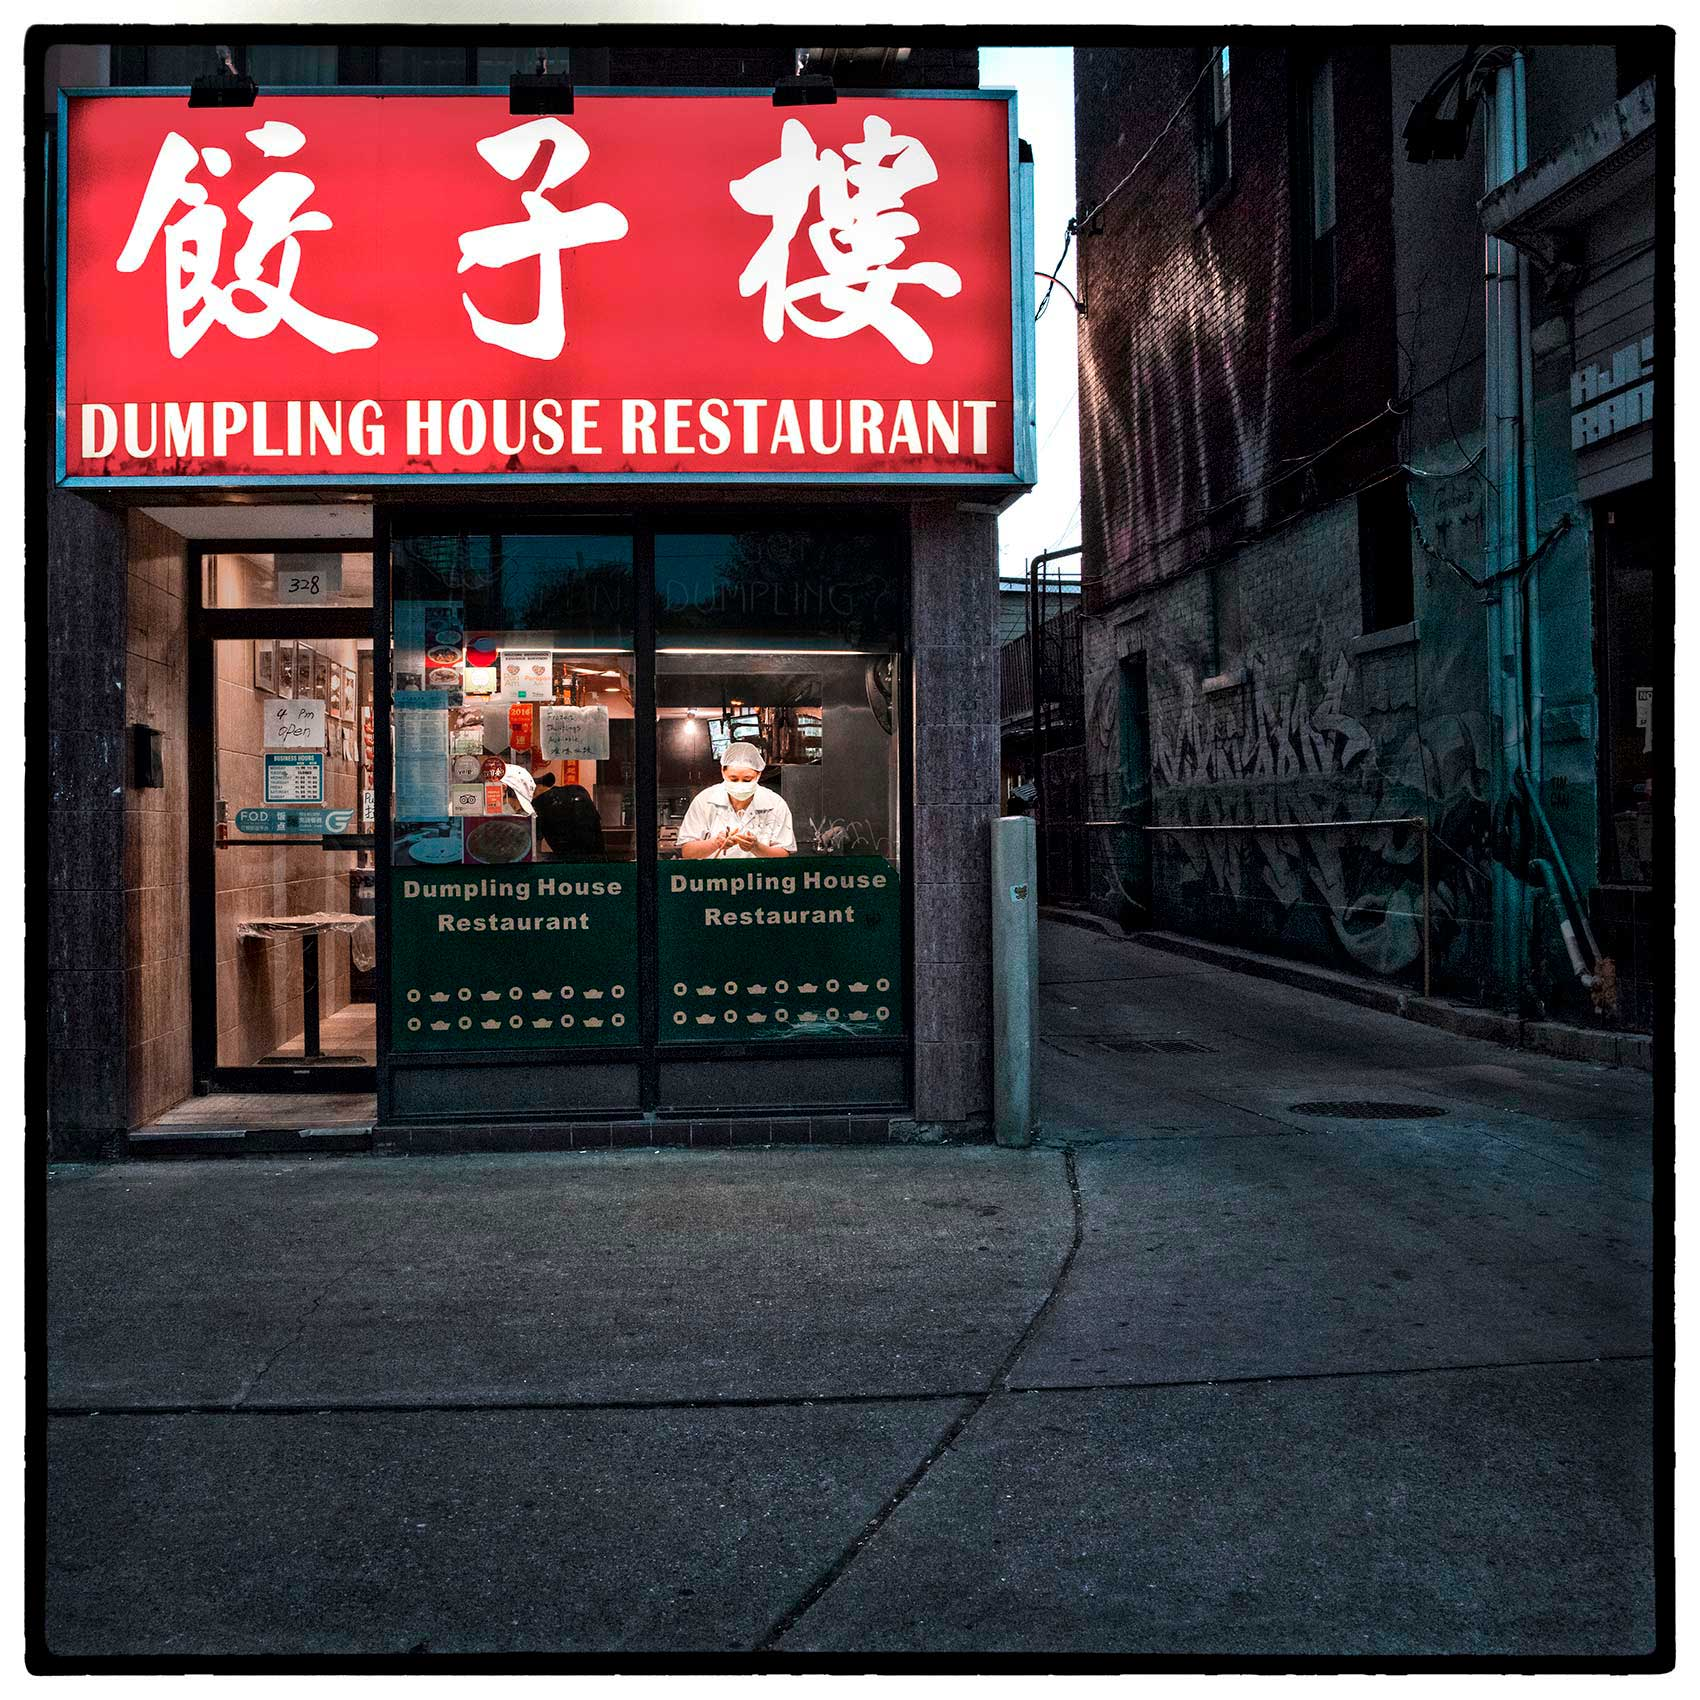 a-chef-wearing-a-mask-at-the-dumpling-house-restaurant-in-Torontos-Chinatown